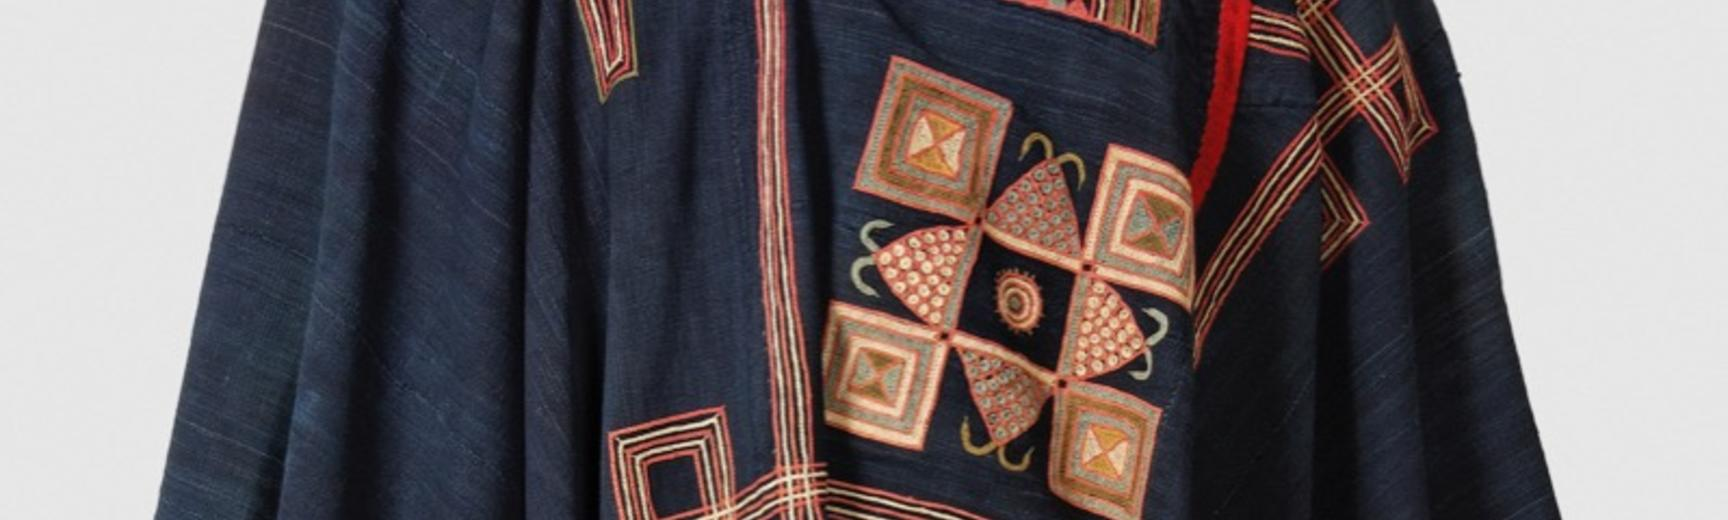 Embroidered cotton gown, kusaibi. Made in Liberia or a neighbouring area of Sierra Leone or Guinea before 1846.